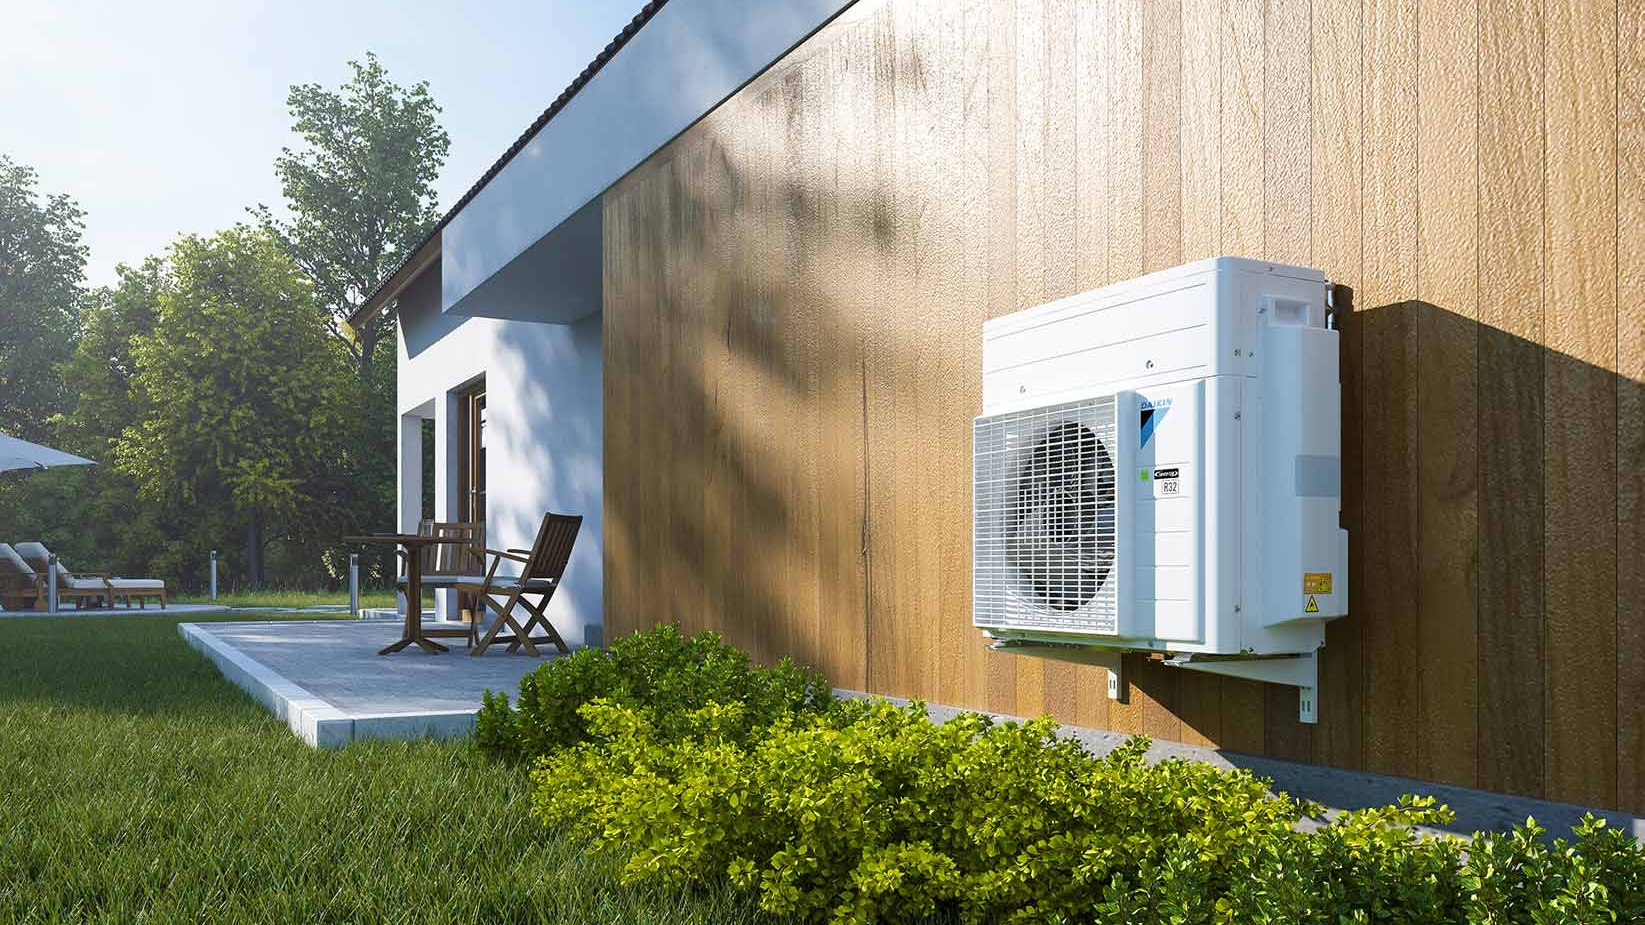 Daikin_Altherma_Hybrid_hydrosplit_heat_pump_outdoor_unit.jpg